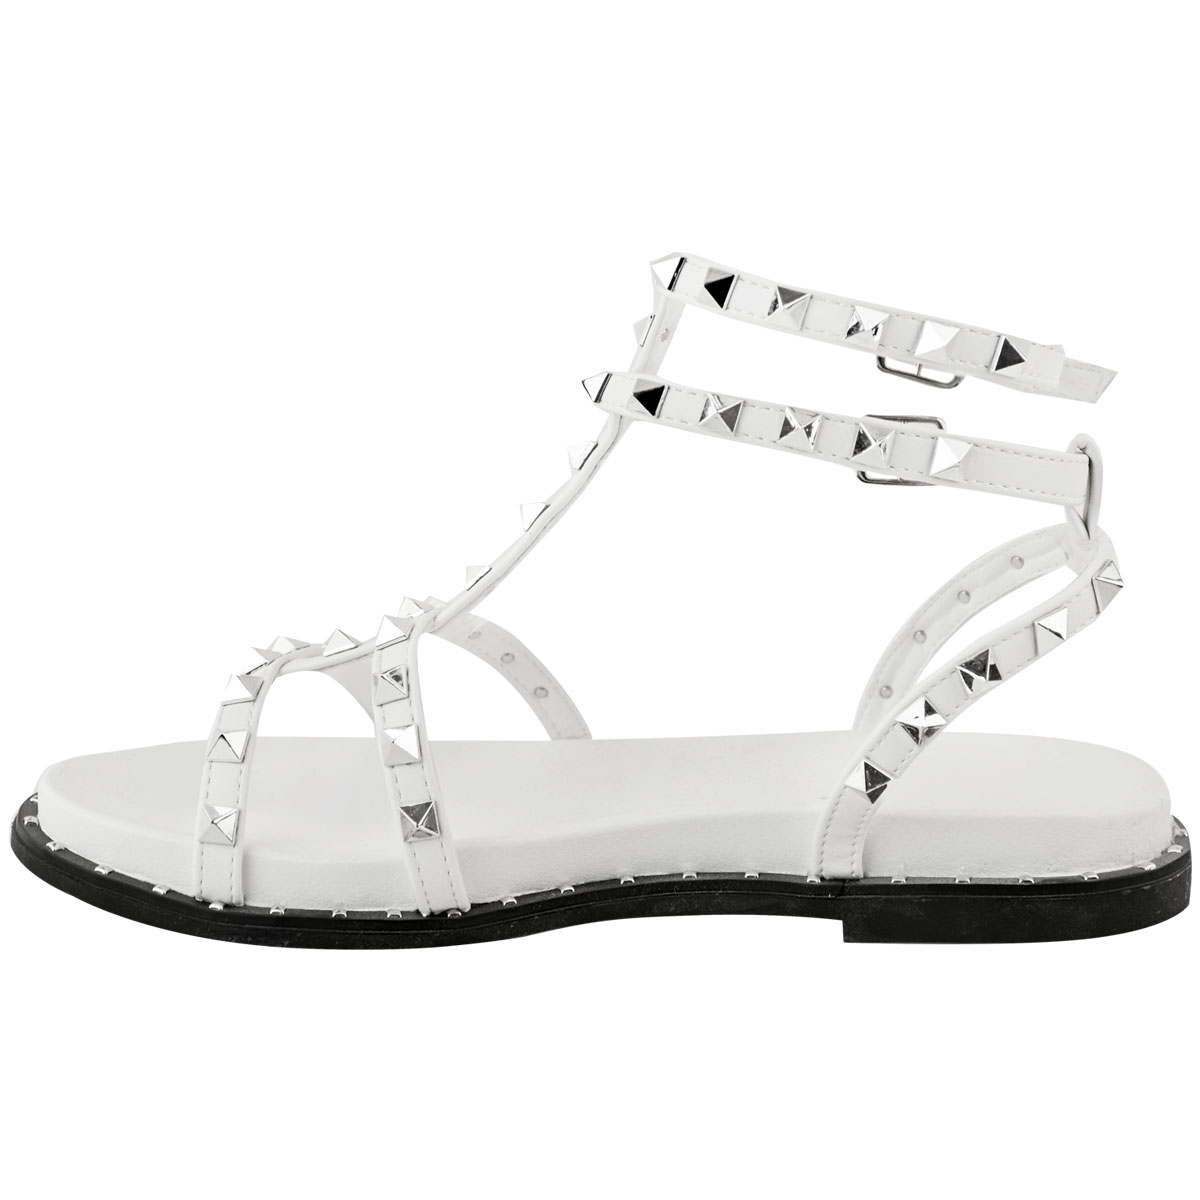 4752a4220ac7e Womens Ladies Flat Studded Sandals Summer Strappy Embellished Rock ...